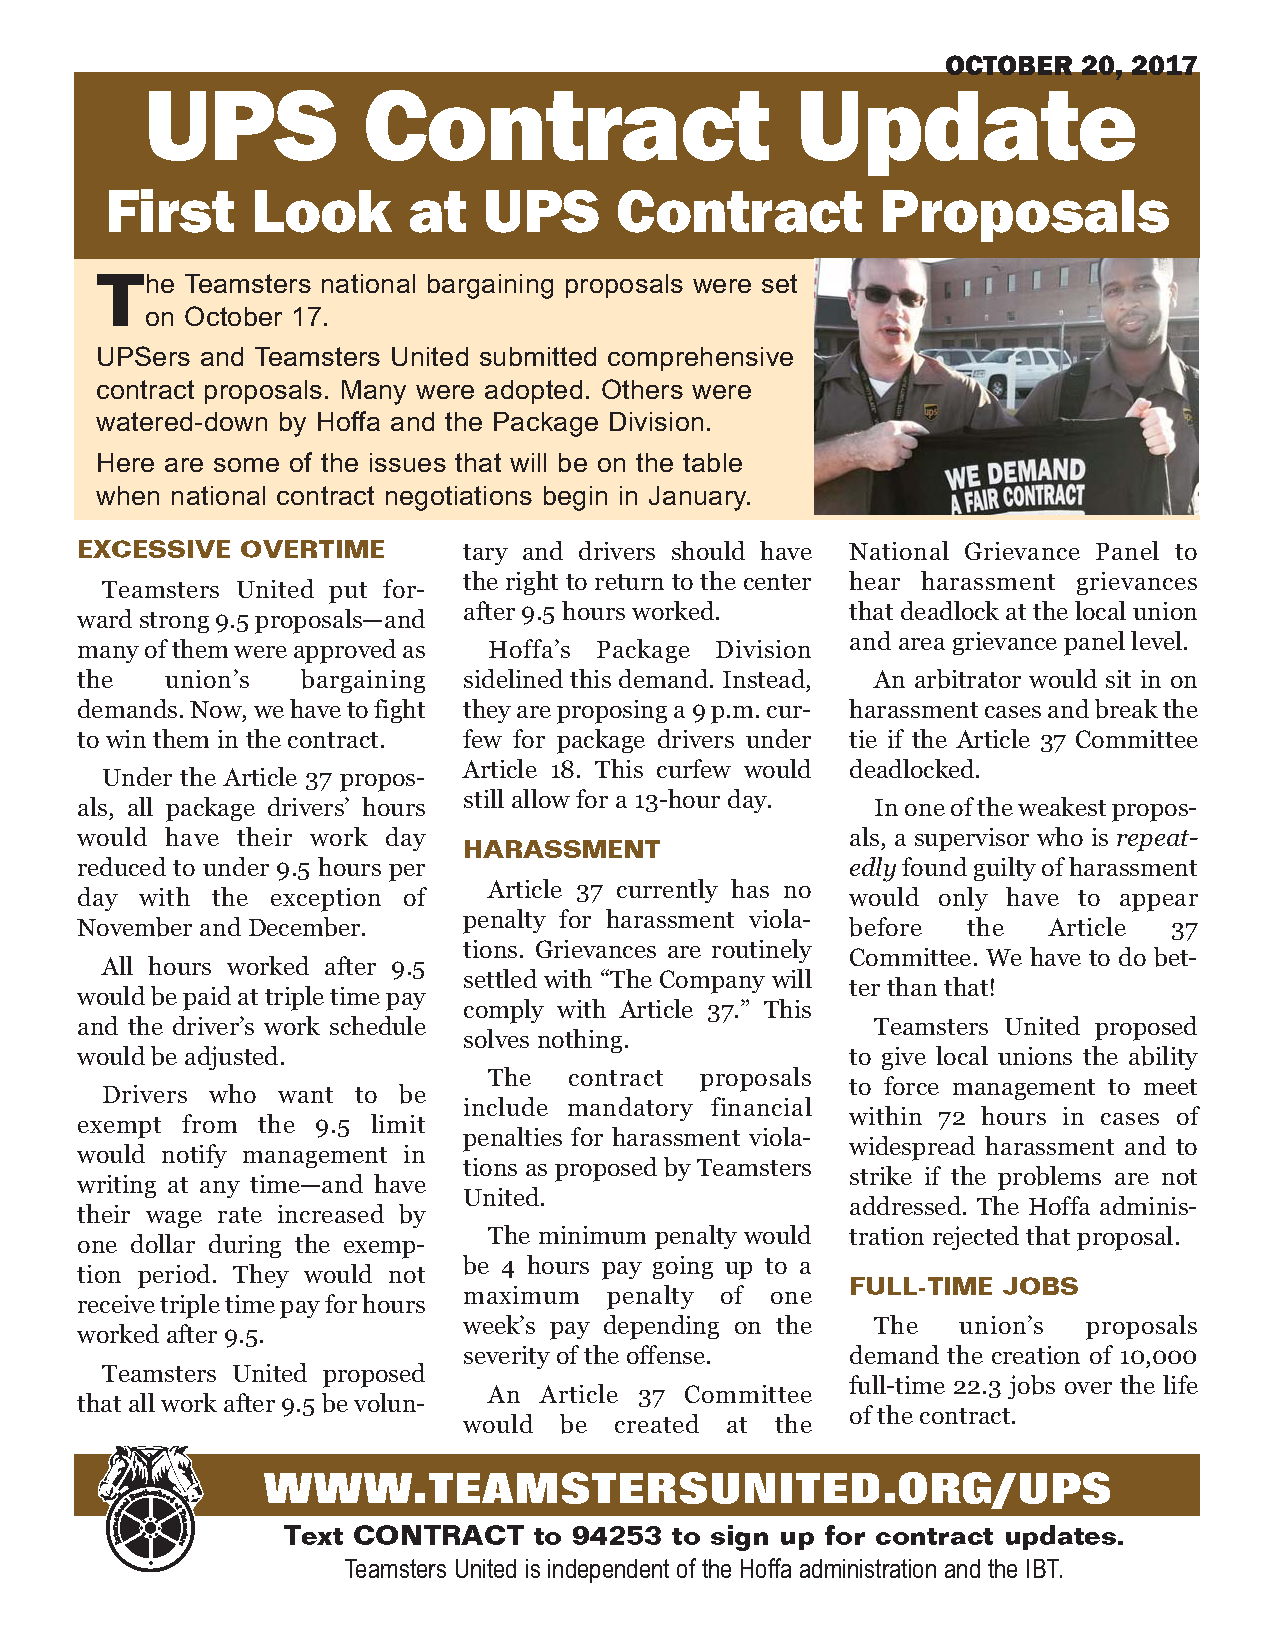 ups-contract_update_oct20_Page_1.png